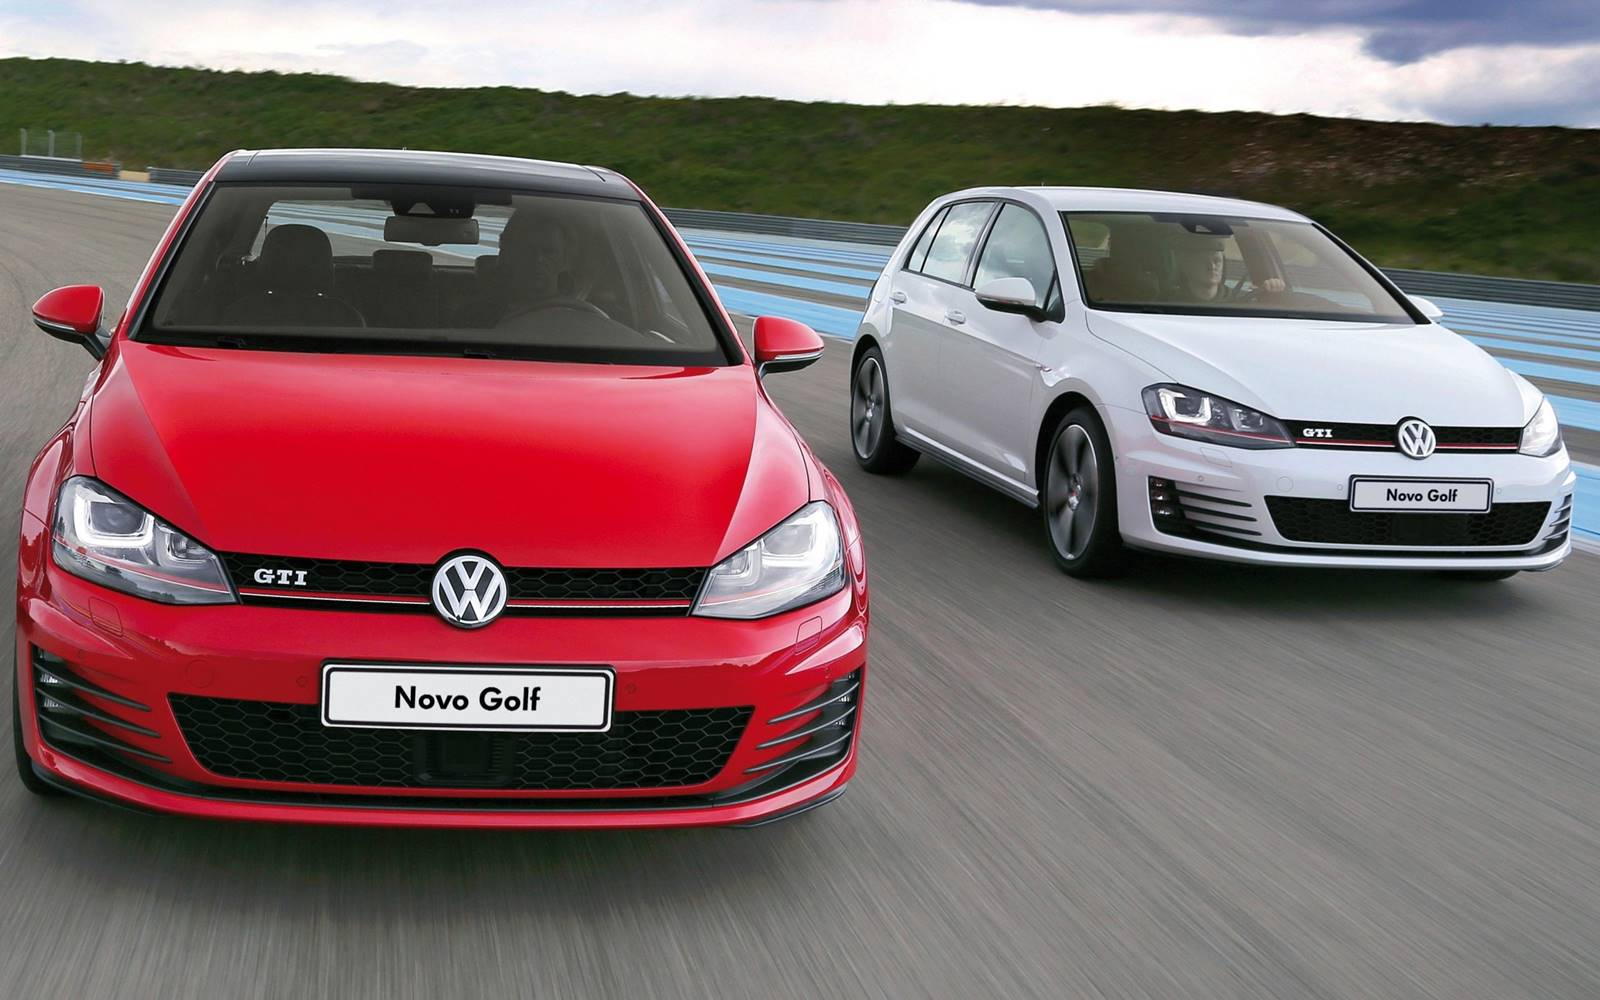 vw golf gti 2016 itens de s rie e opcionais pre os car blog br. Black Bedroom Furniture Sets. Home Design Ideas